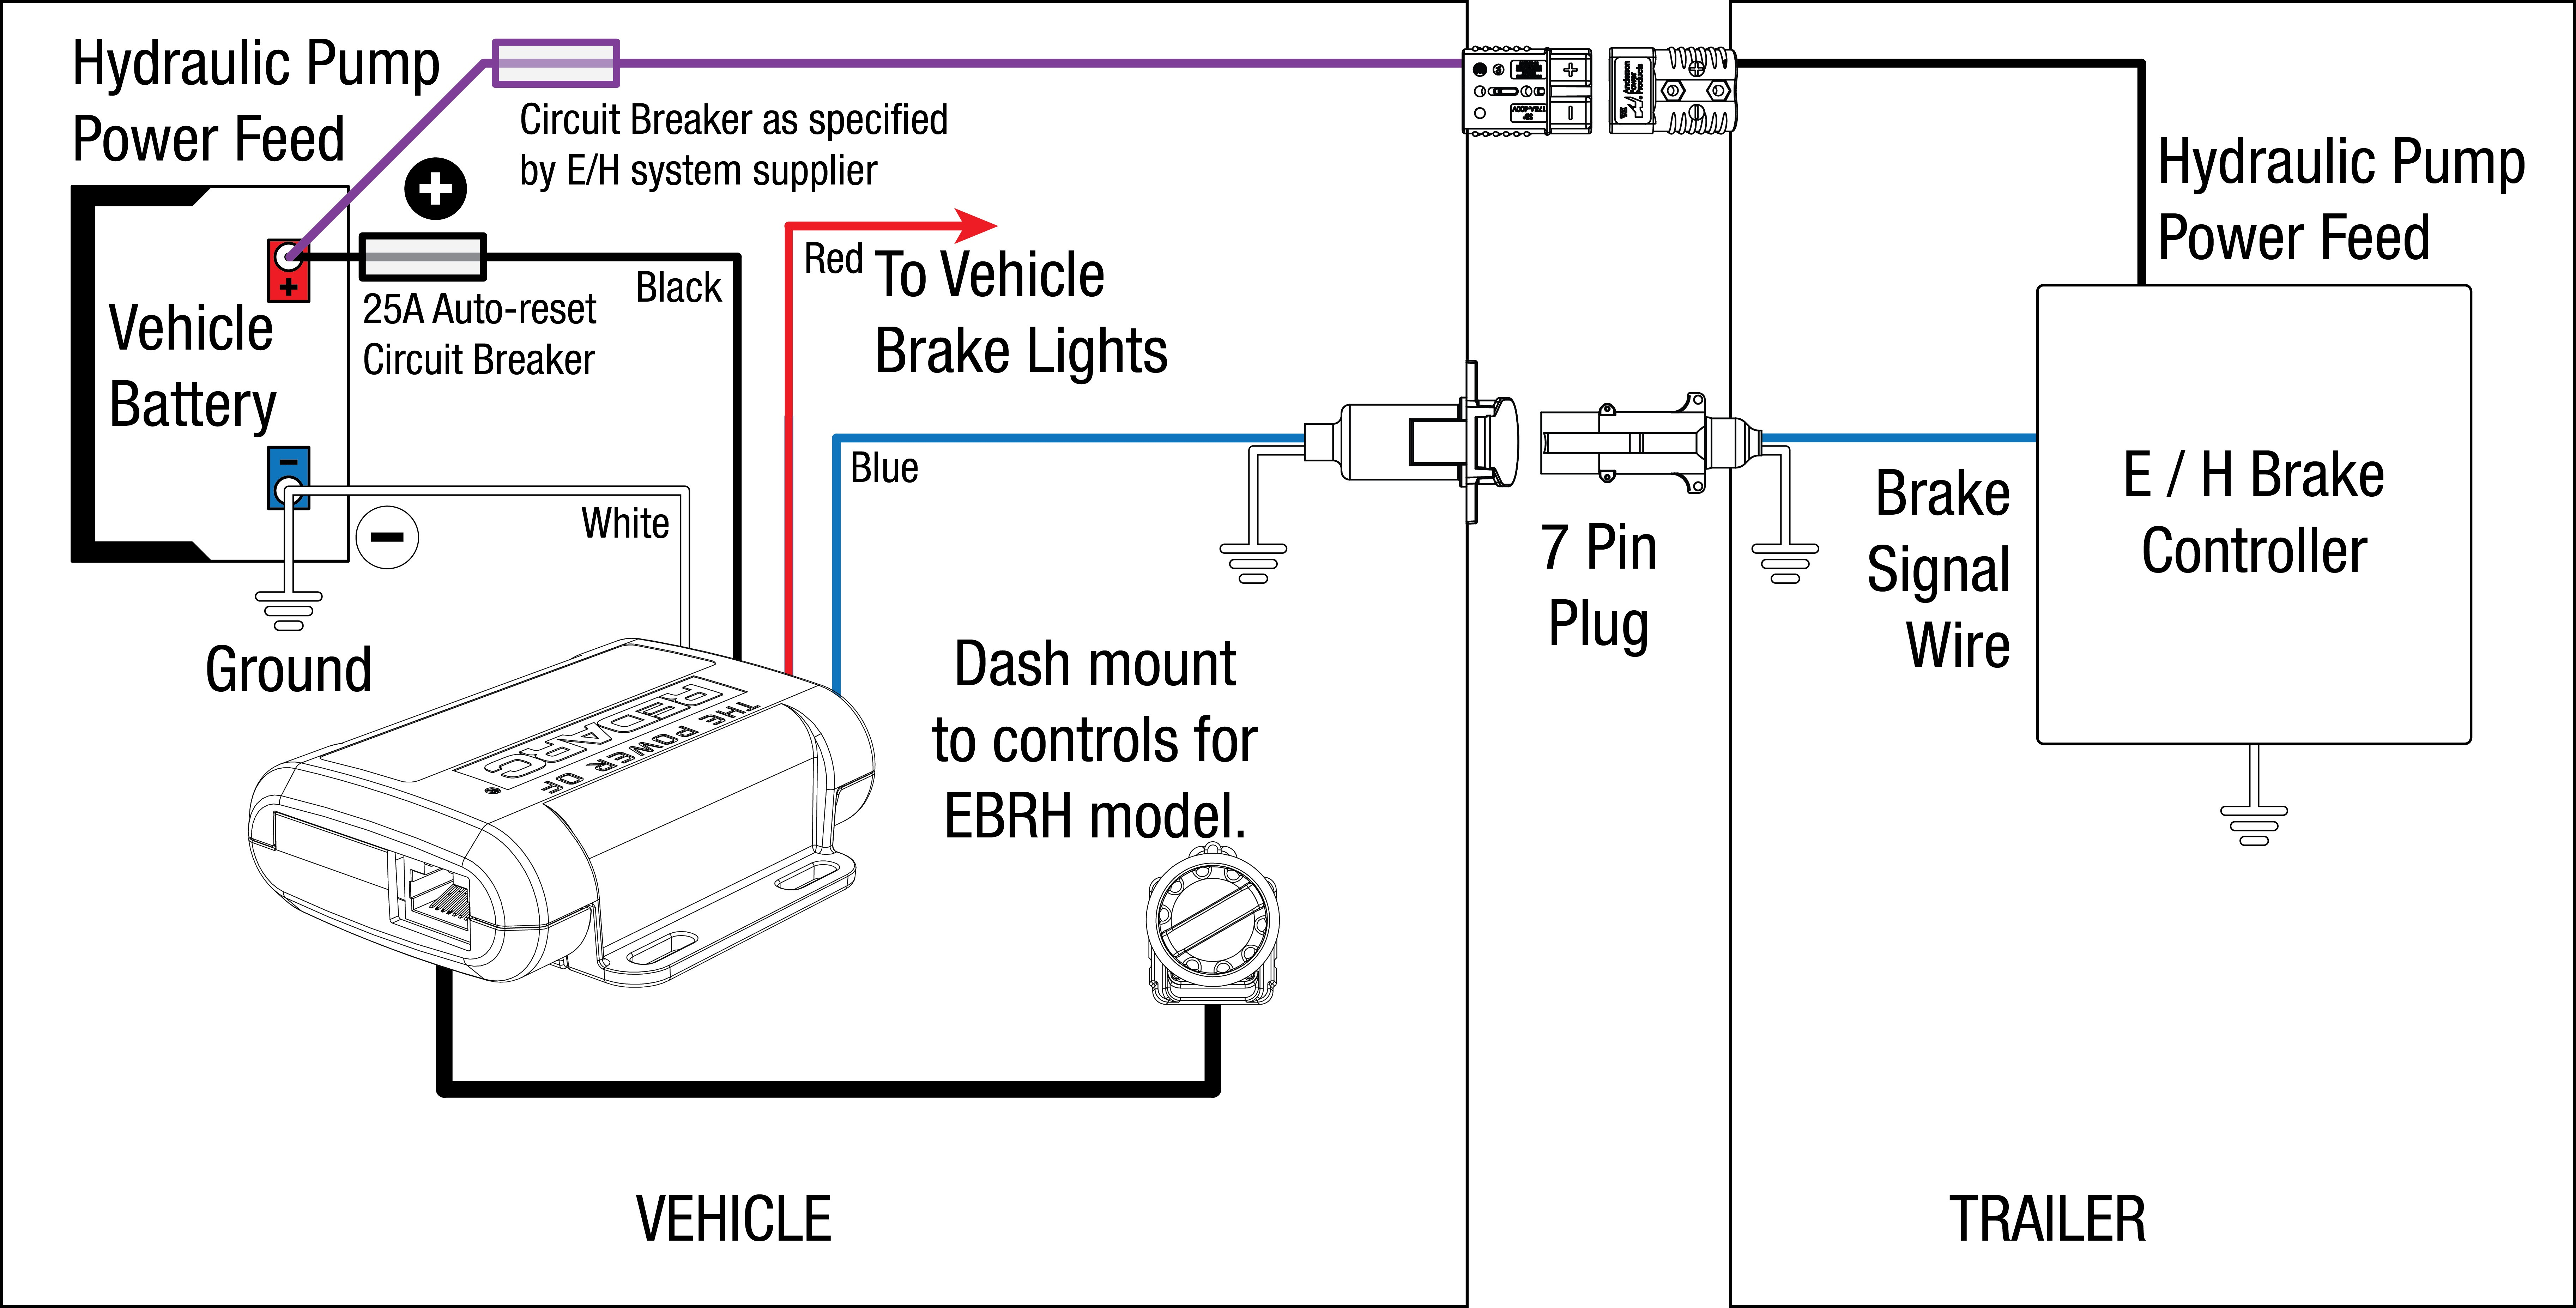 Electric Trailer Brake Controller Wiring Diagram And inst 03 At Primus Iq In